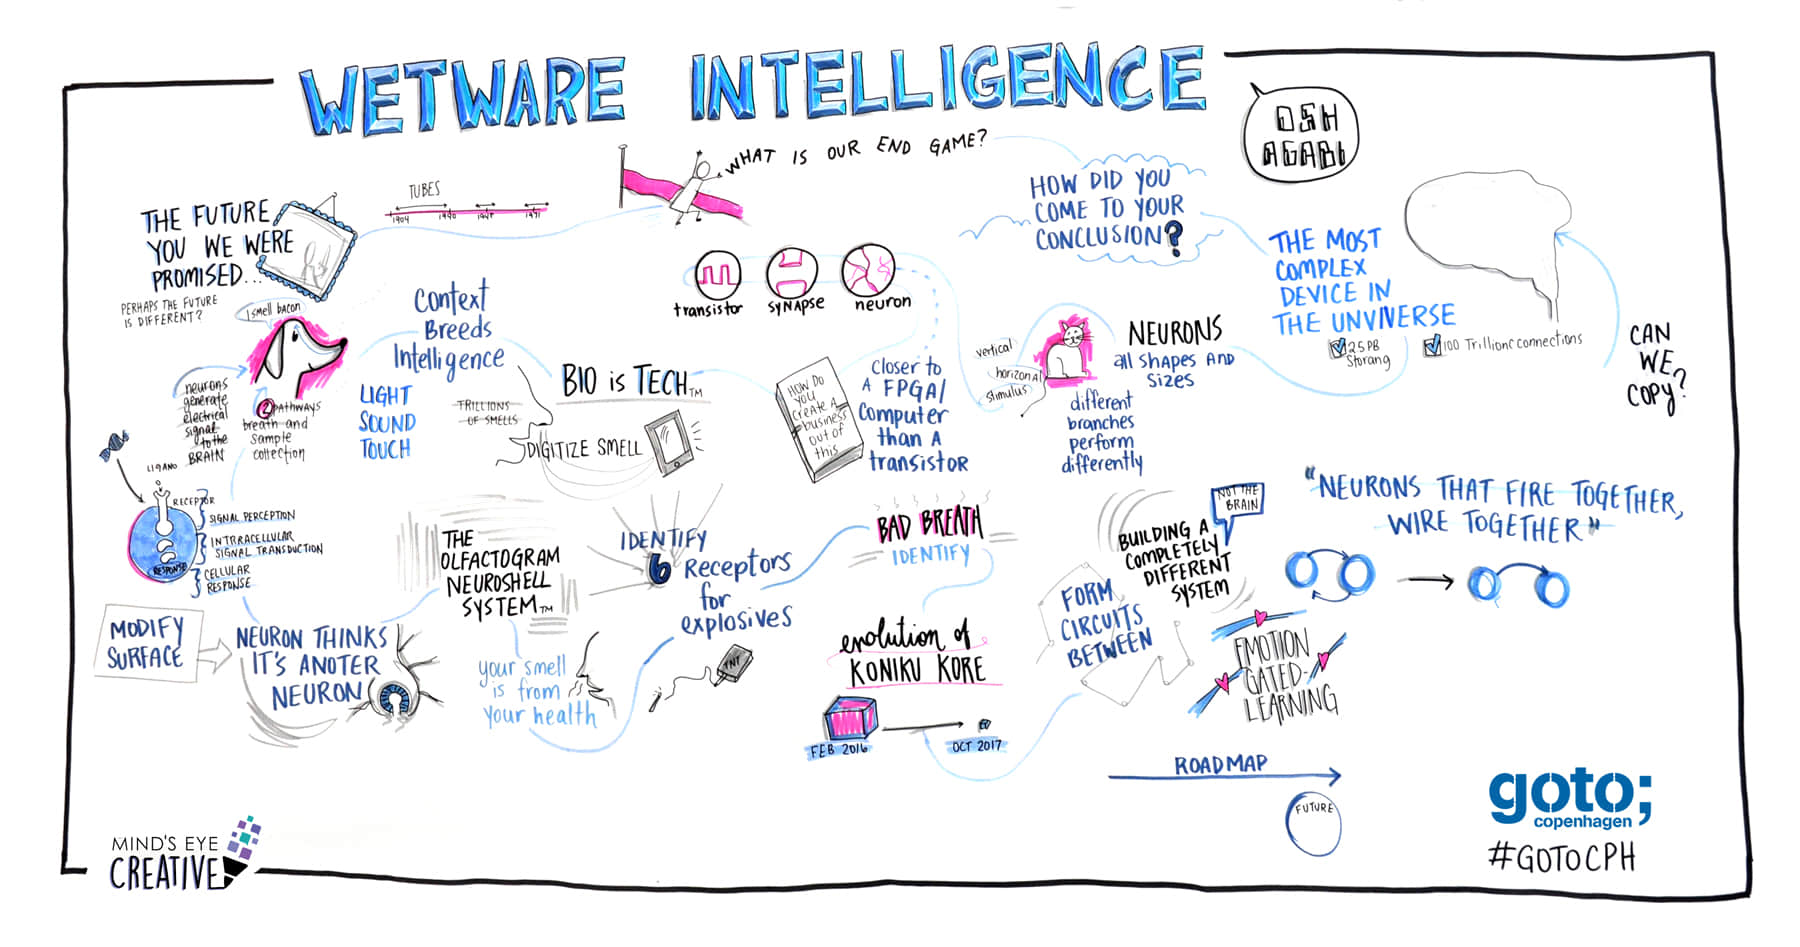 graphic recording of goto cph by Mind's Eye Creative